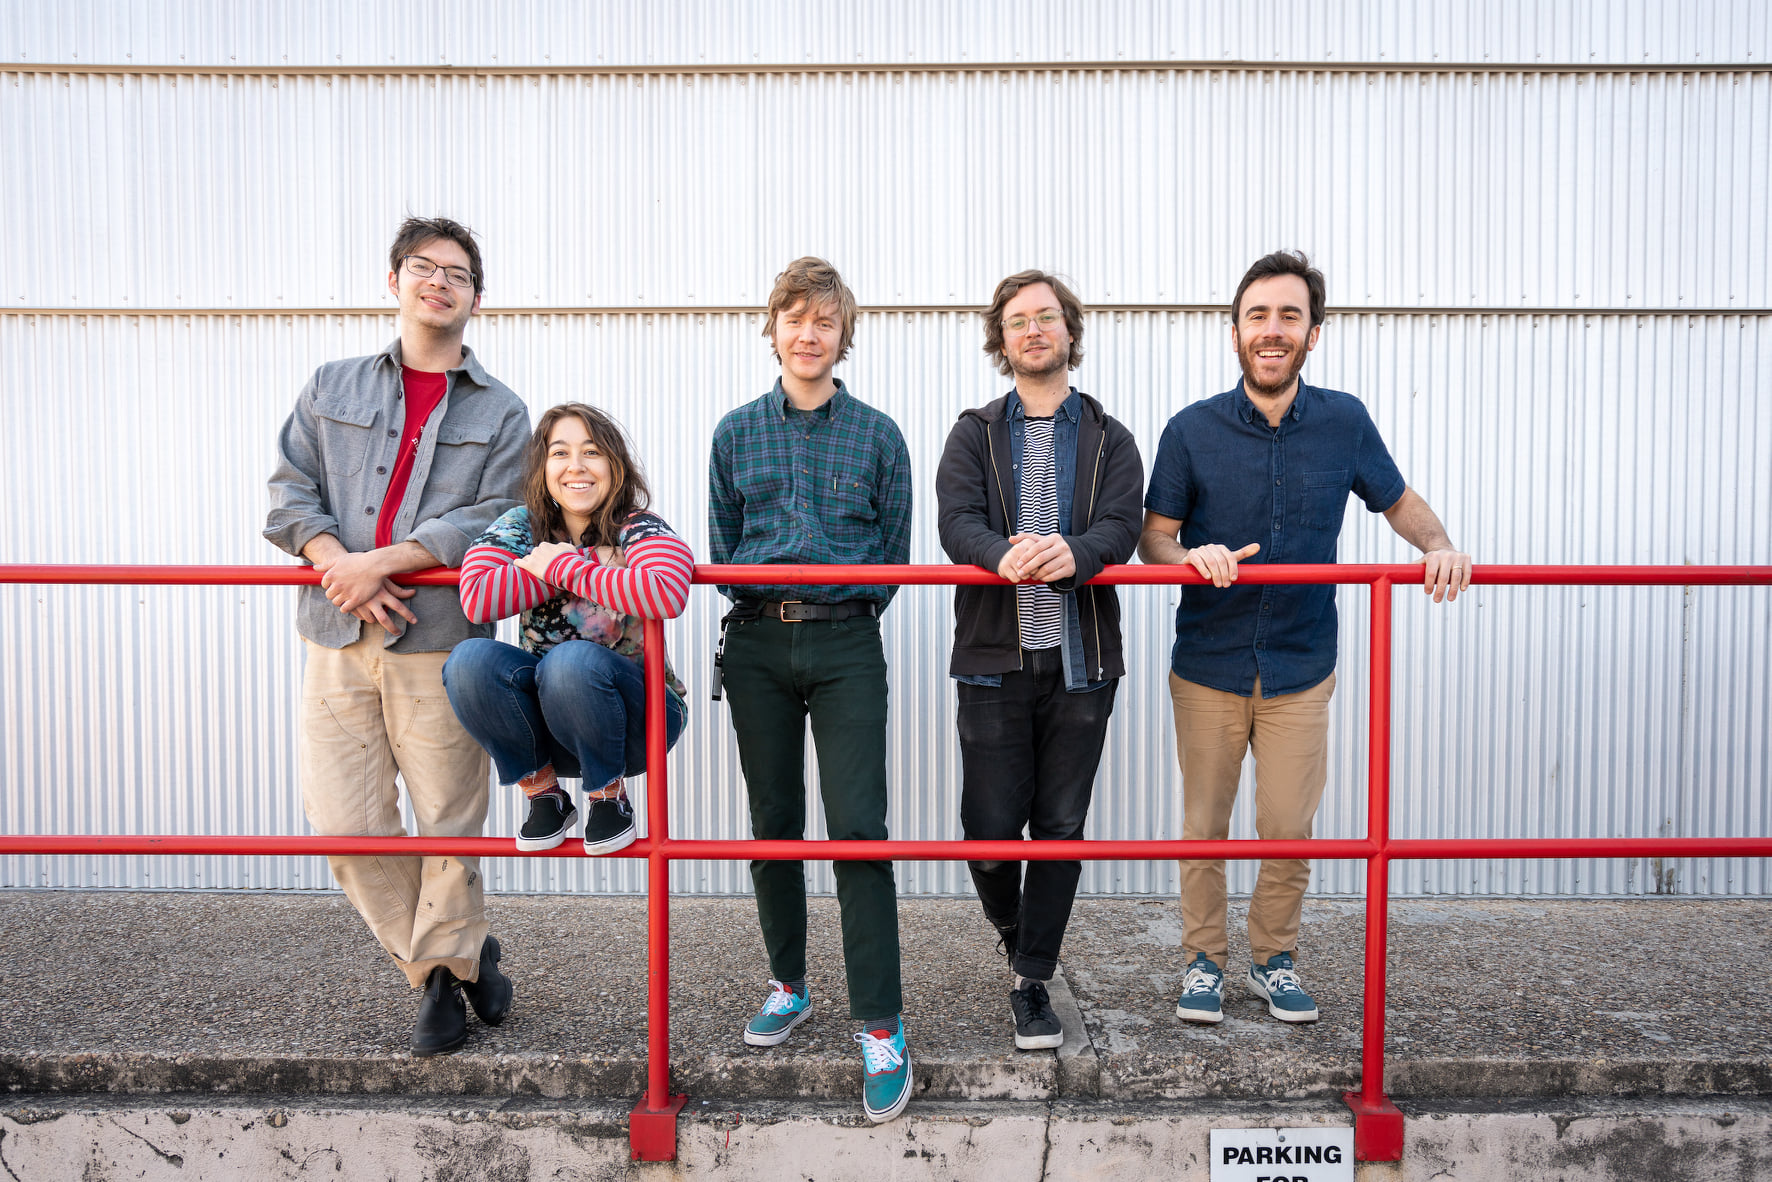 Pinegrove Announces Tour With Support From Samia, Mikaela Davis, Blue Ranger and More